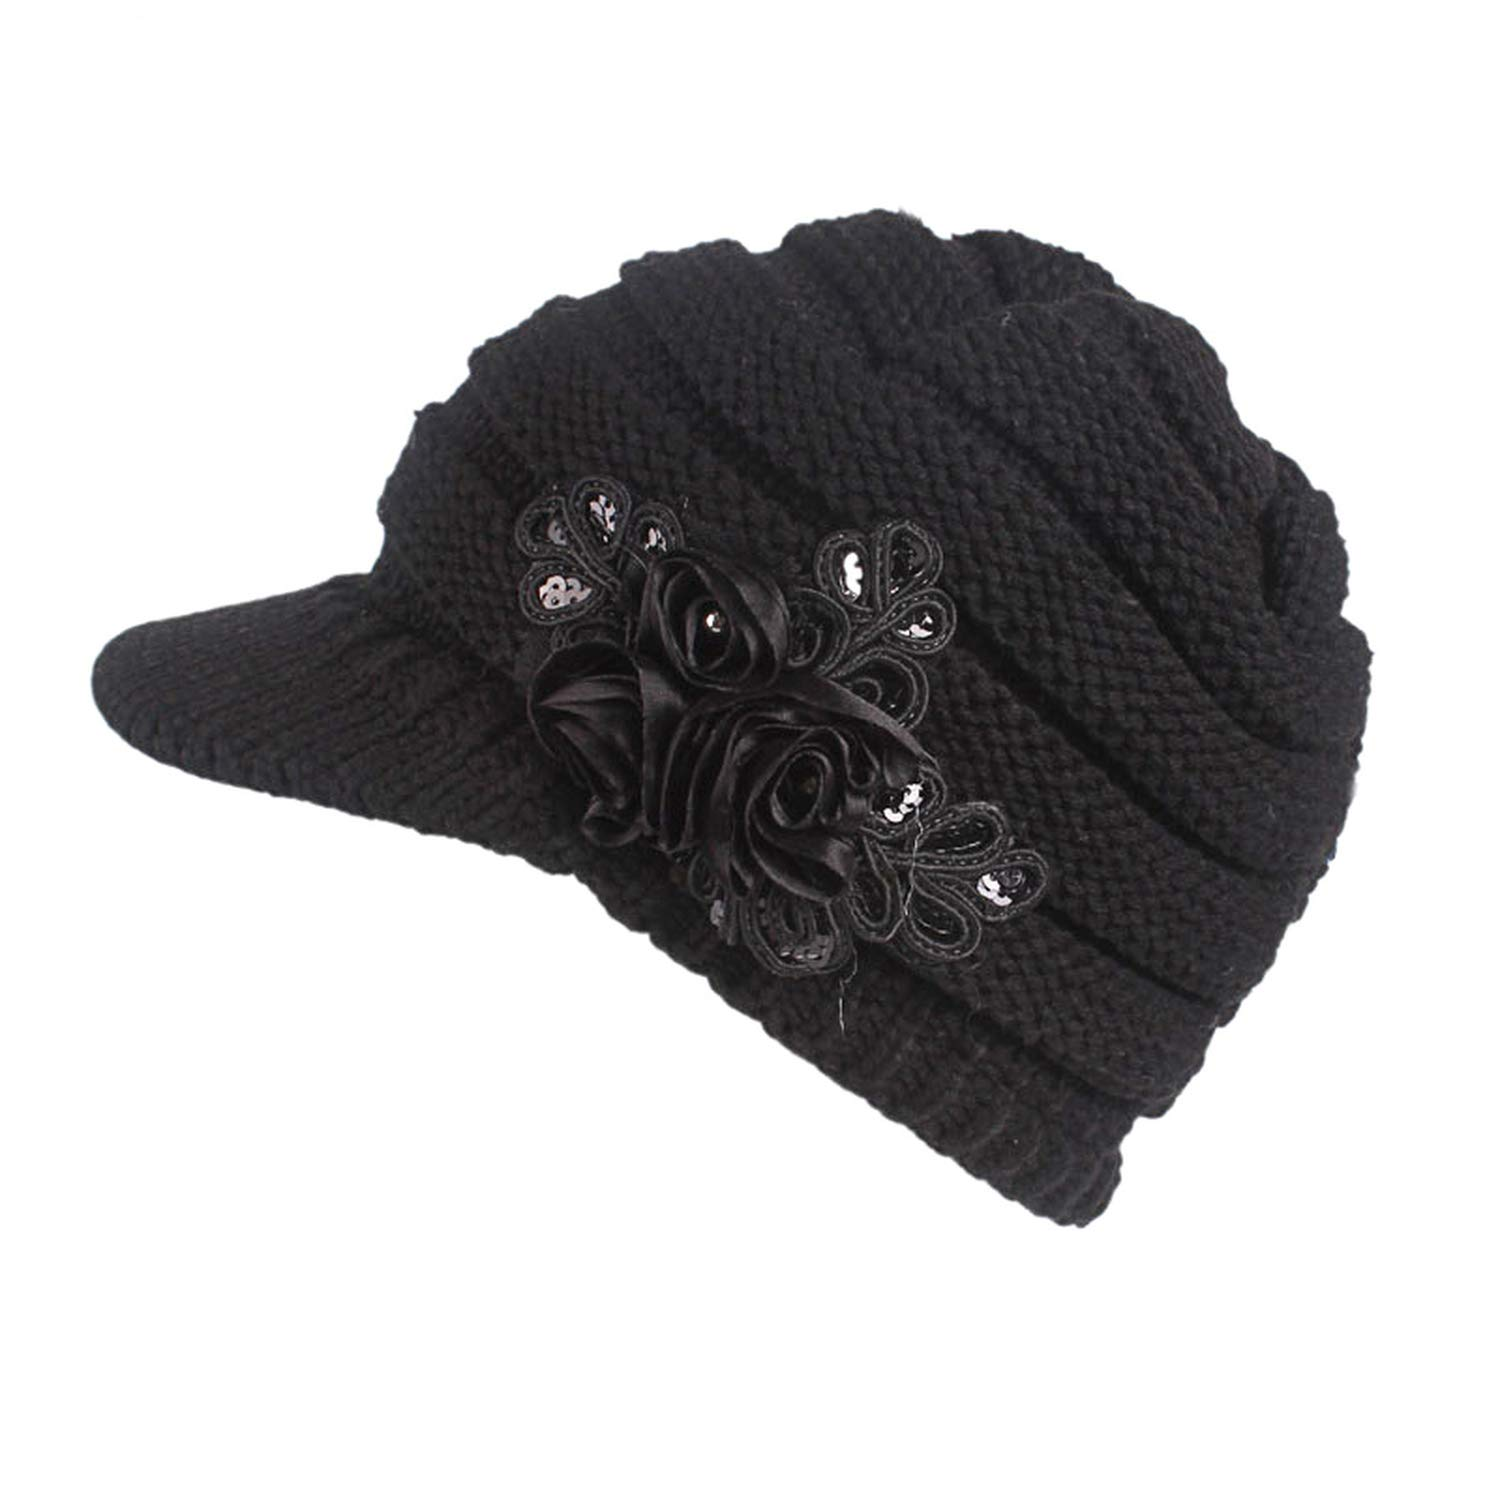 Ron Kite New Cable Knit Visor Cap Hat with Sequined Flower Accent Slouchy Beanie Knitted Beret Cap Warm Knitting Hats